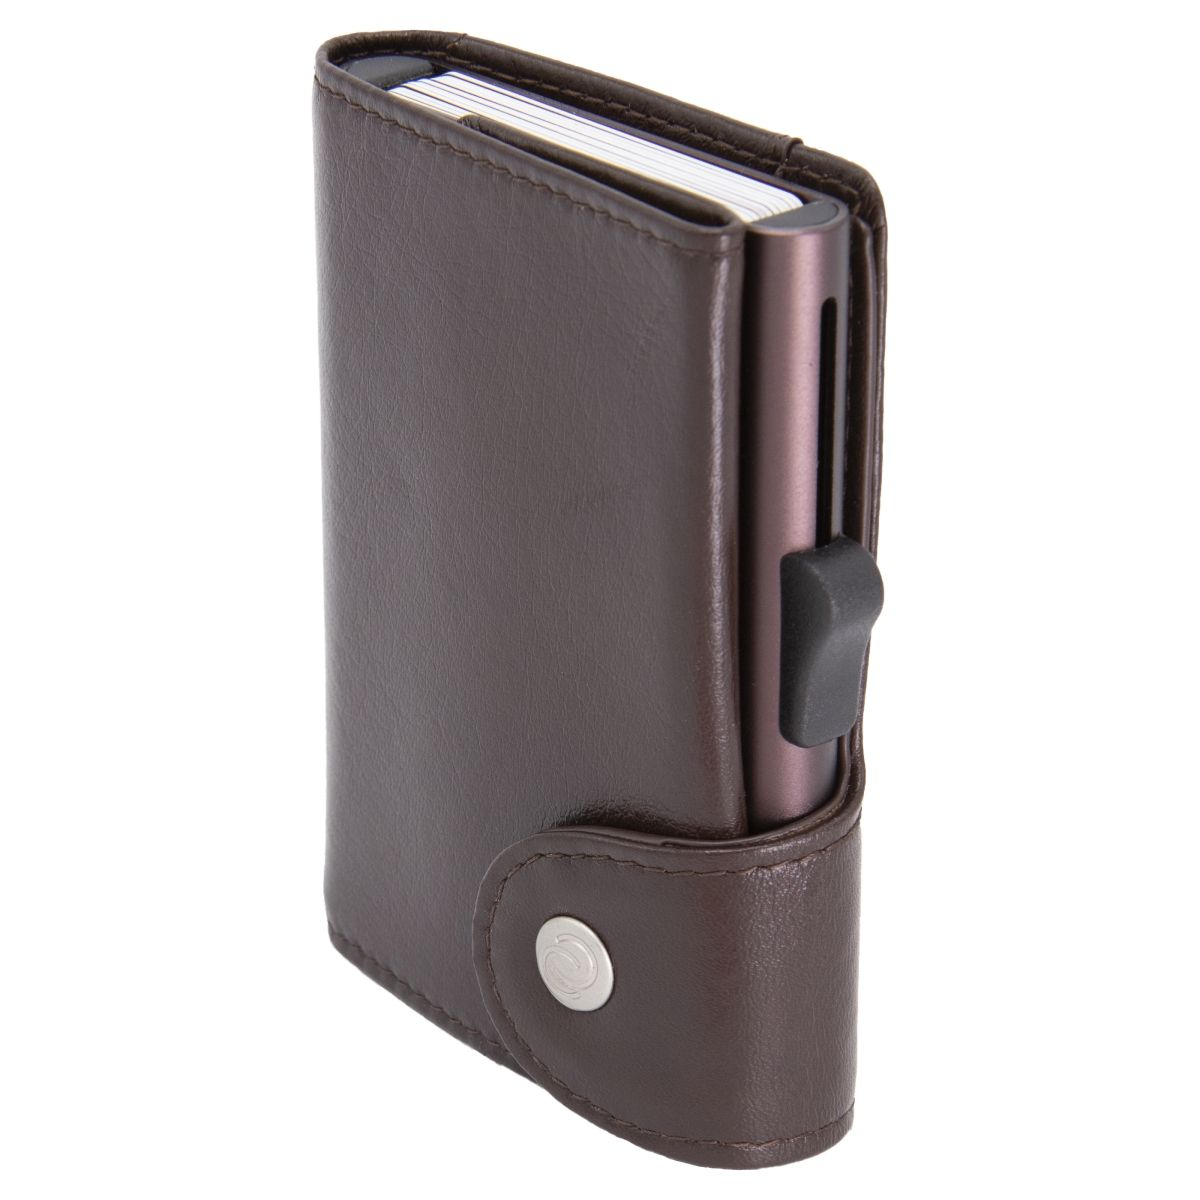 C-Secure XL Aluminum Wallet with Vegetable Genuine Leather - Mogano Brown